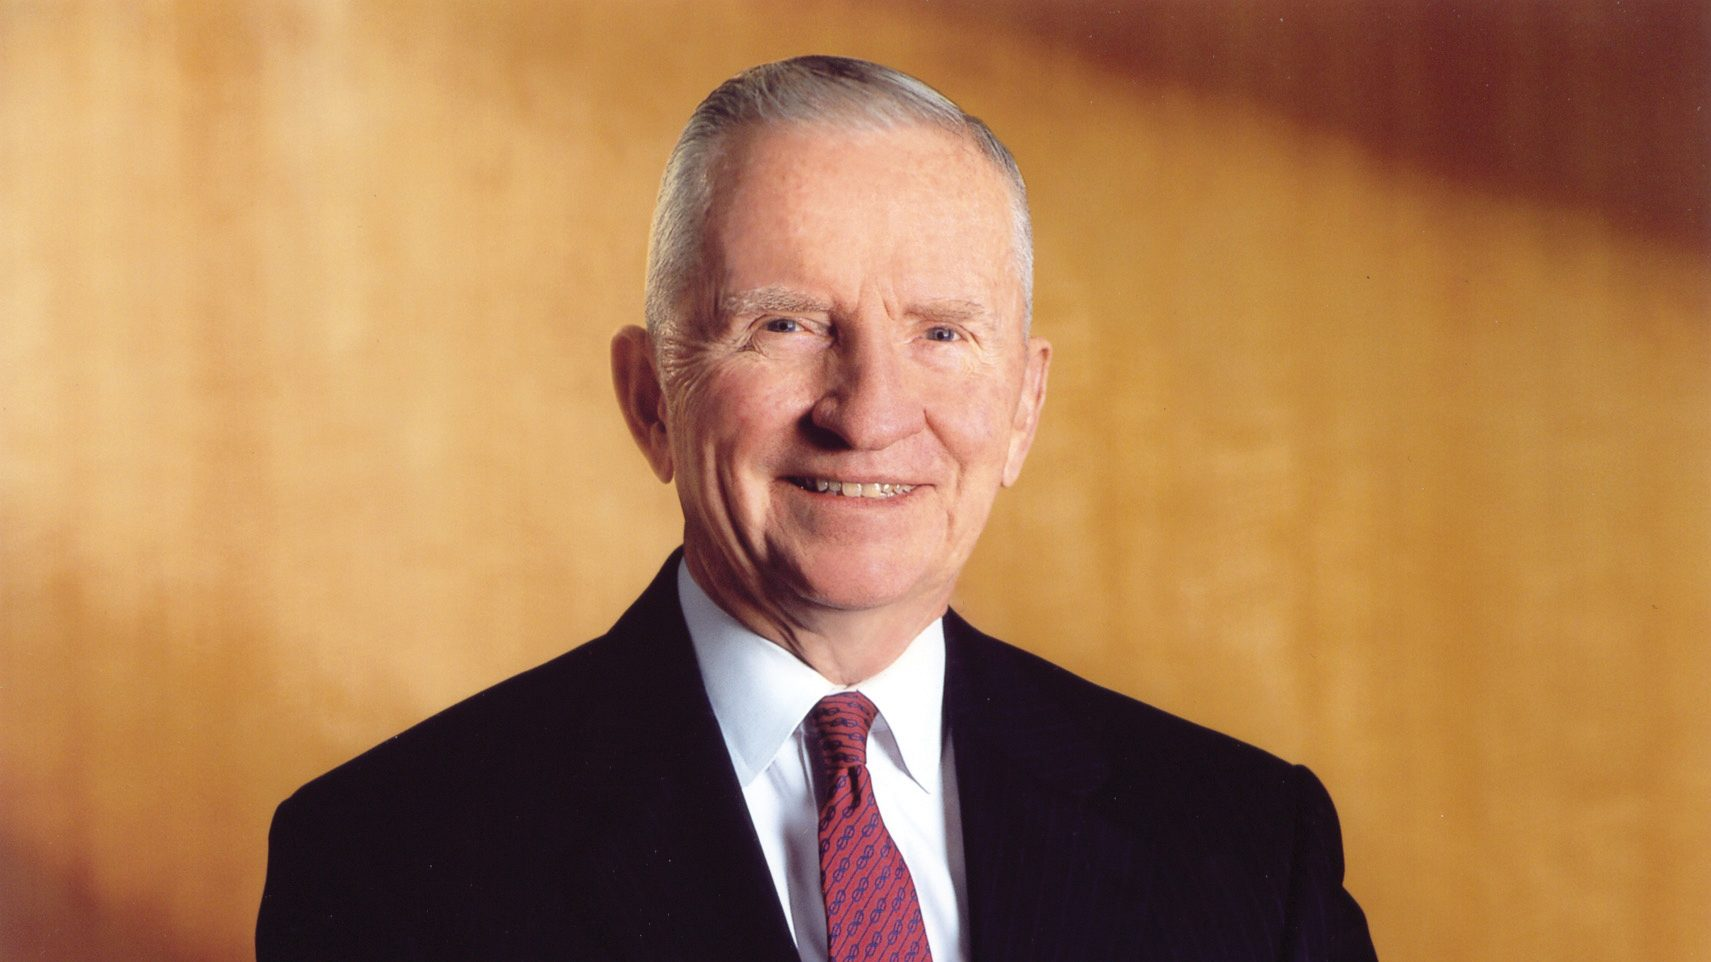 H. Ross Perot is investing in MD Anderson's efforts to make personalized cancer therapy a reality. Photo courtesy of H. Ross Perot.